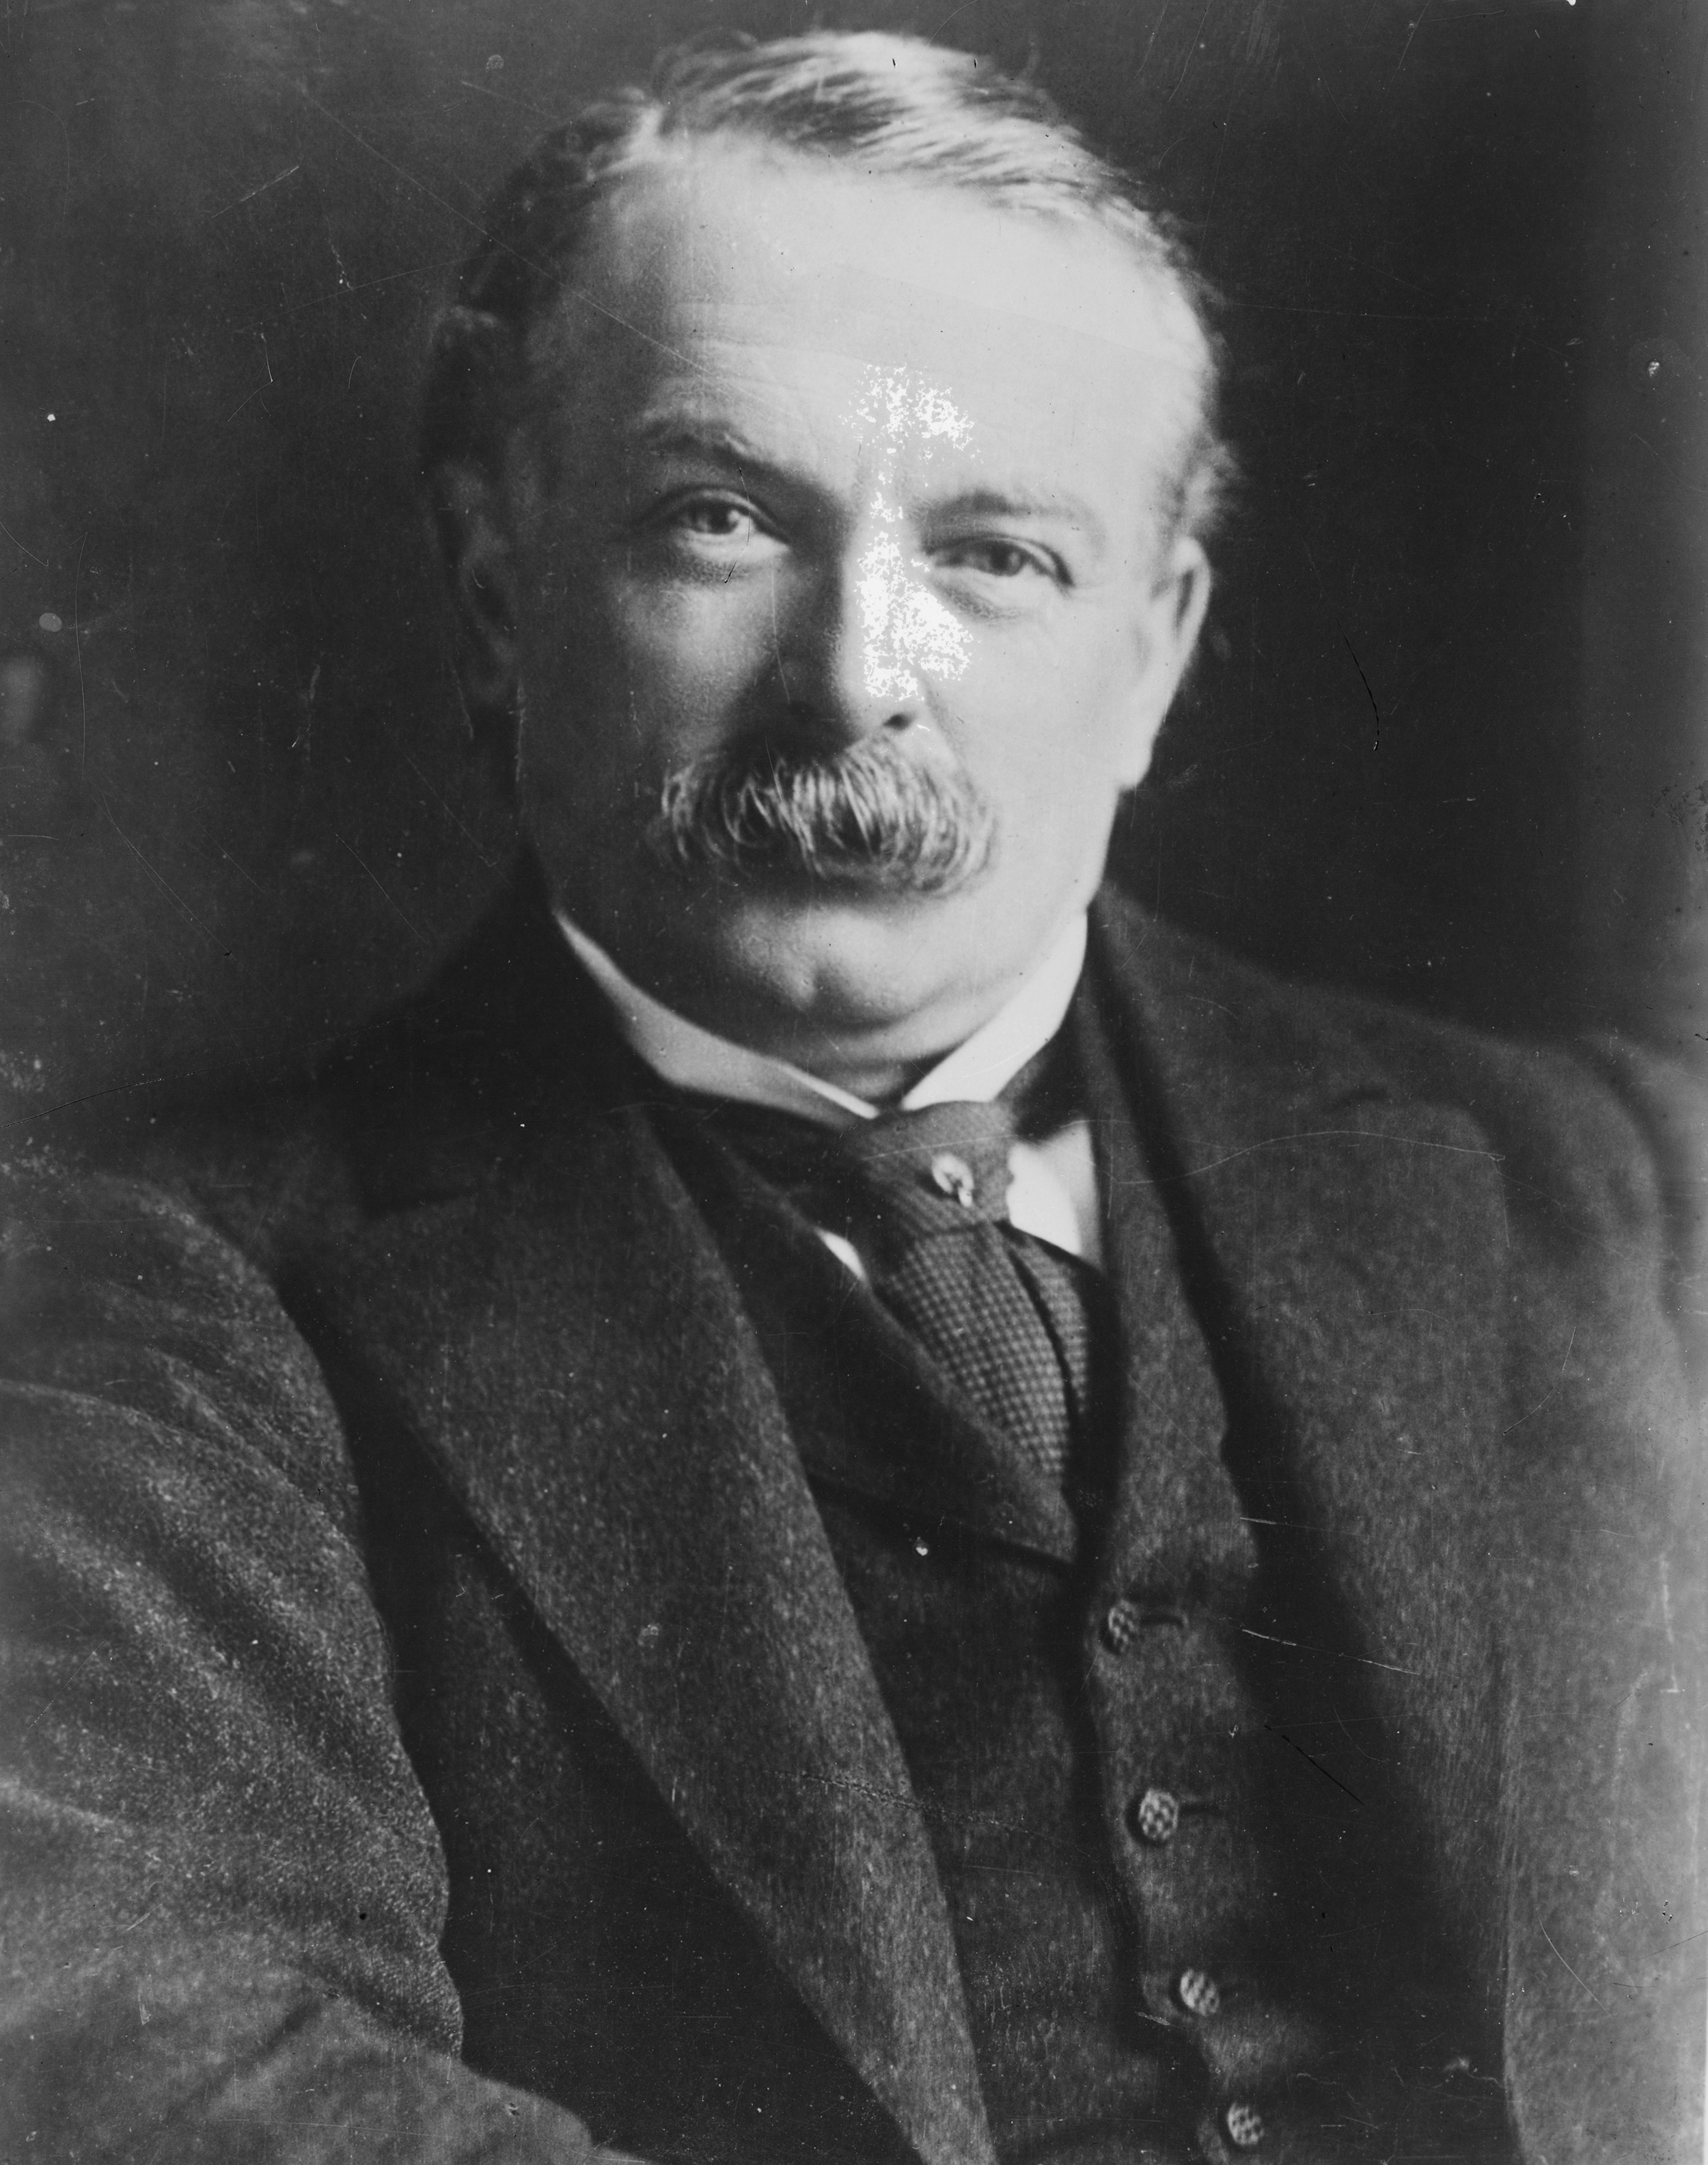 David Lloyd George, who became Prime Minister of Great Britain in December 1916.